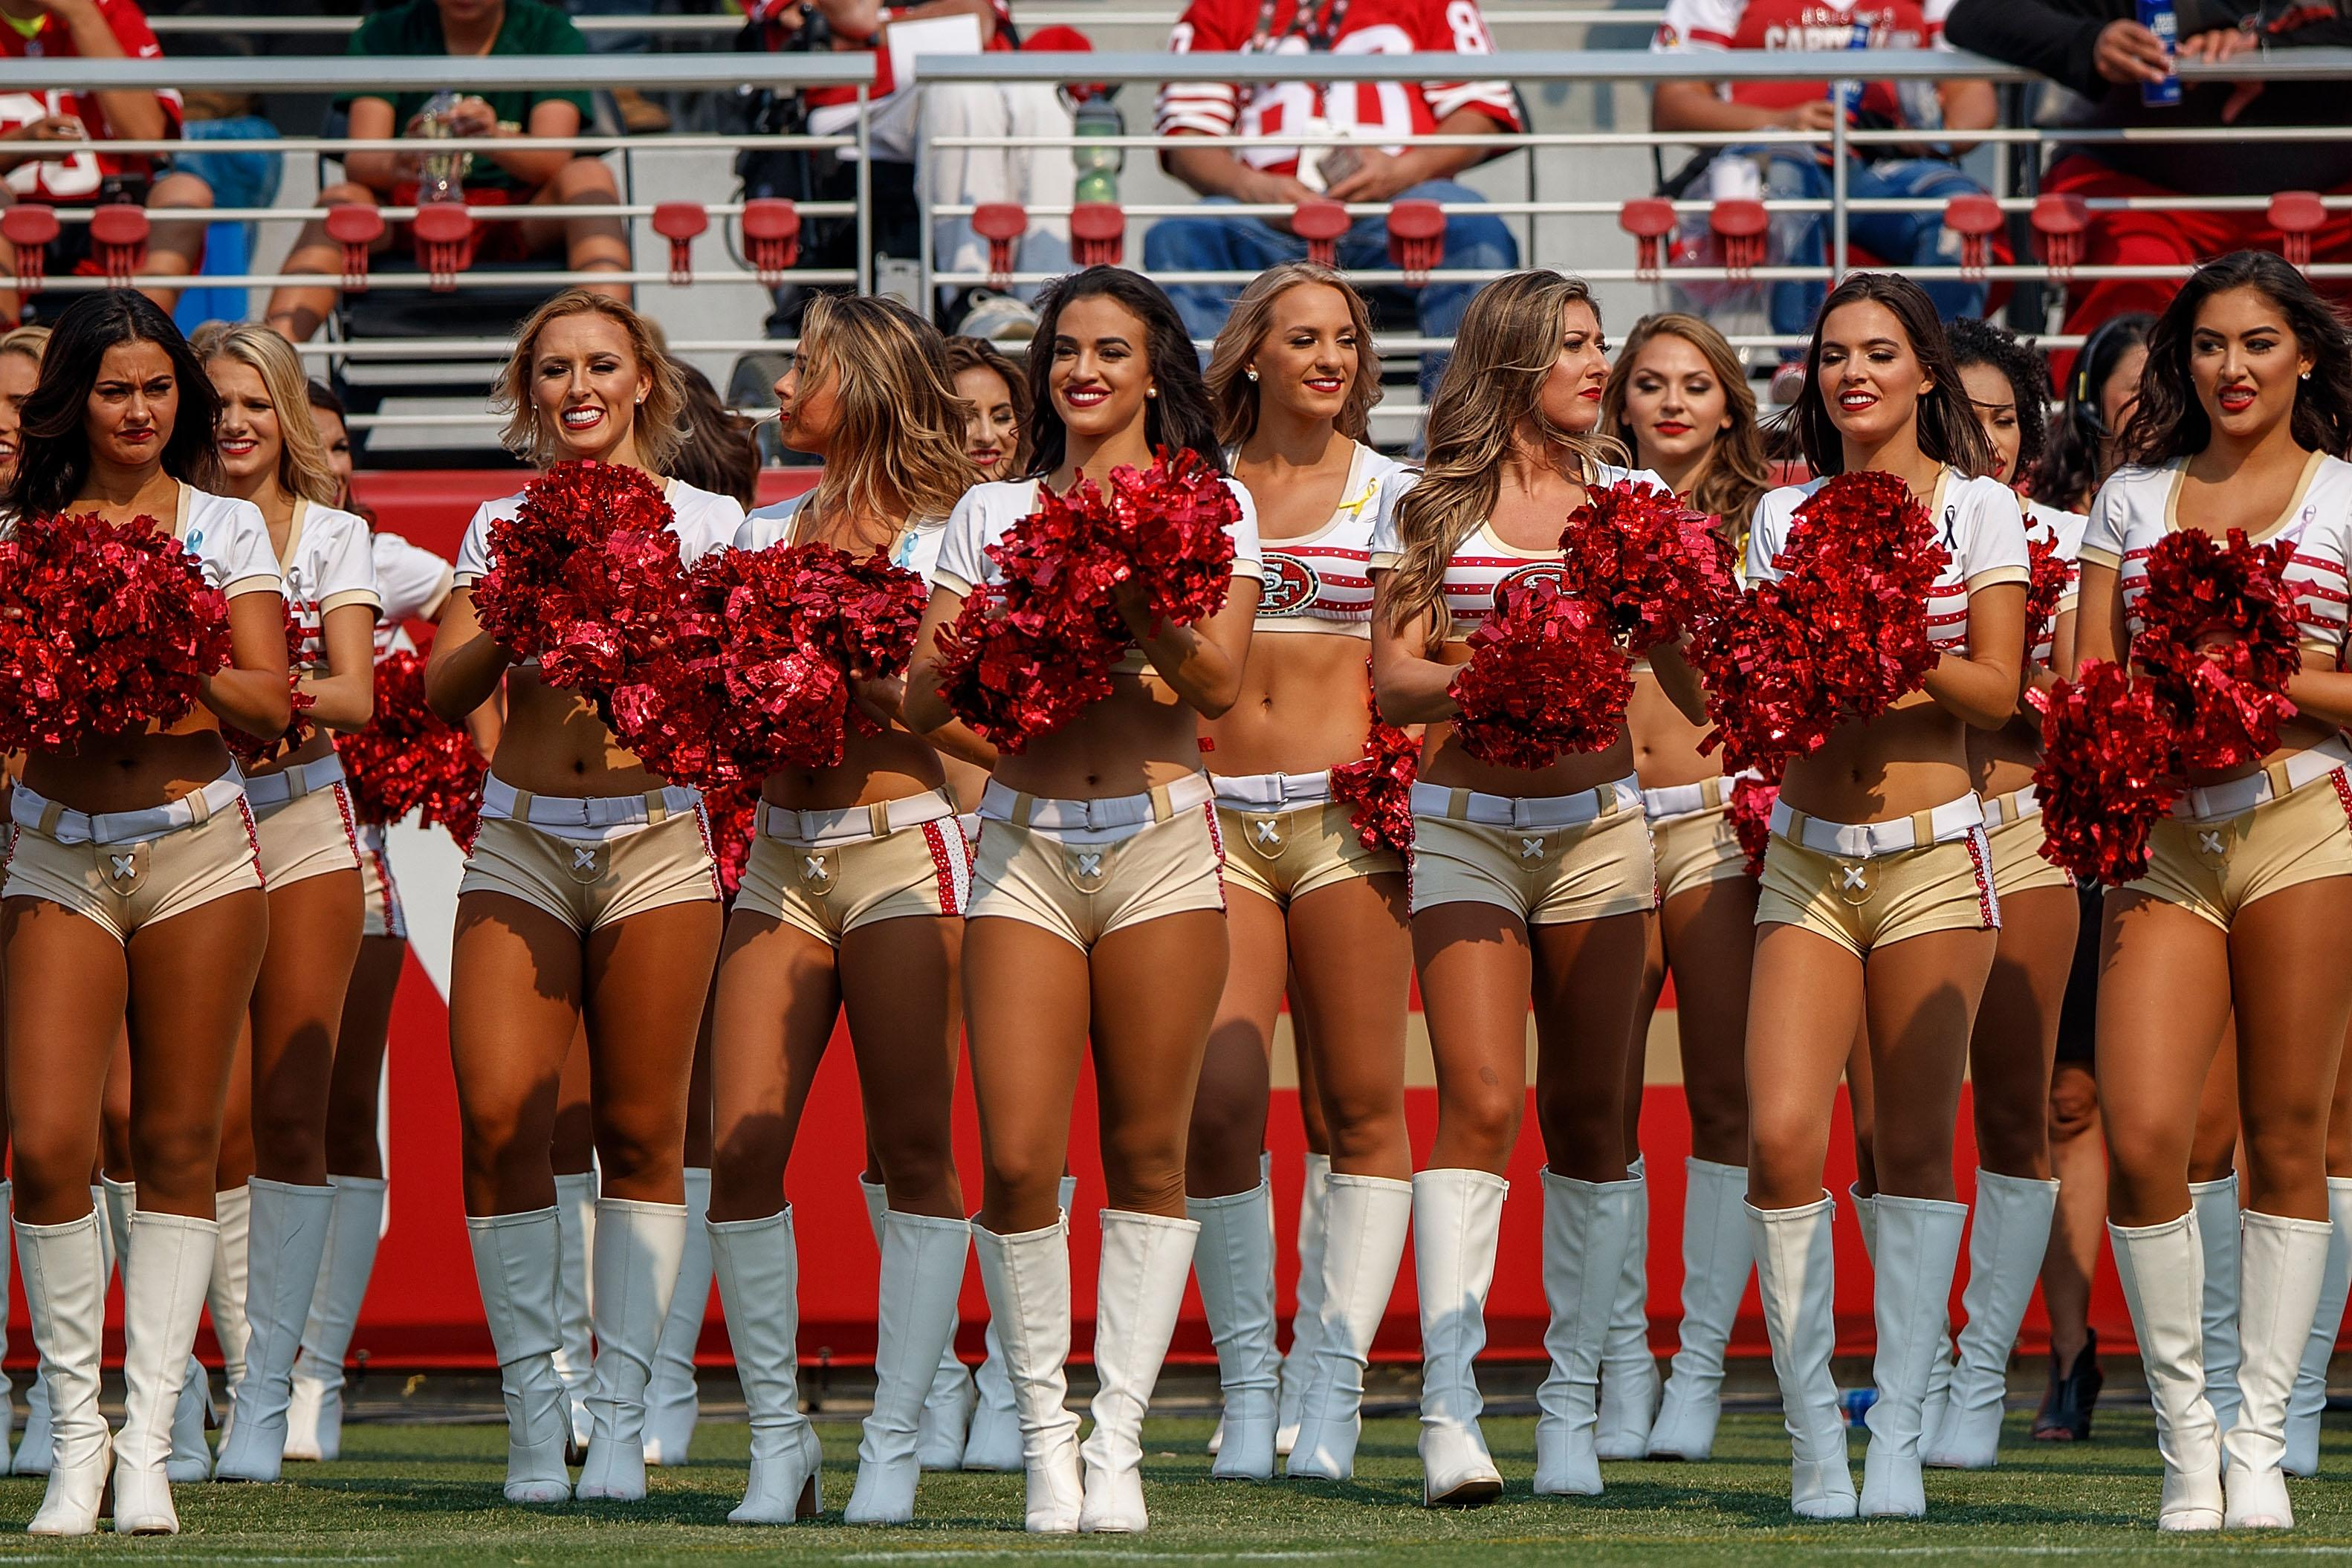 Cheerleaders are a traditional part of the NFL circus